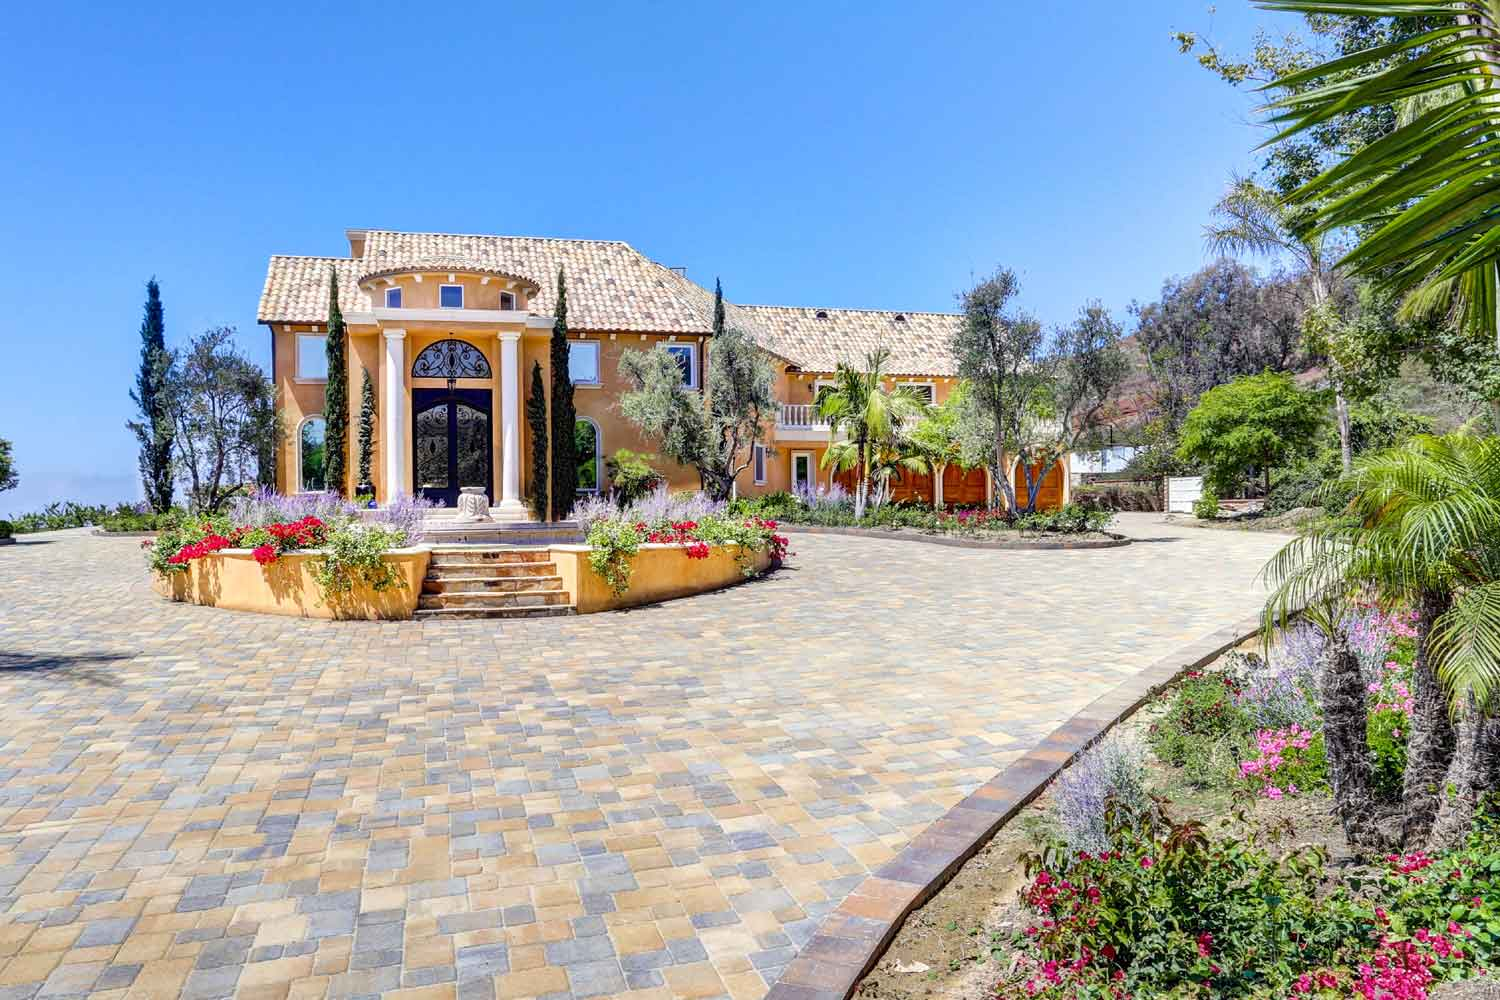 <b>San Juan Capistrano, California</b><br/><i>9 Bedrooms, 14,000 sq. ft.</i><br/>Nine-bedroom estate boasting breathtaking ocean and city views